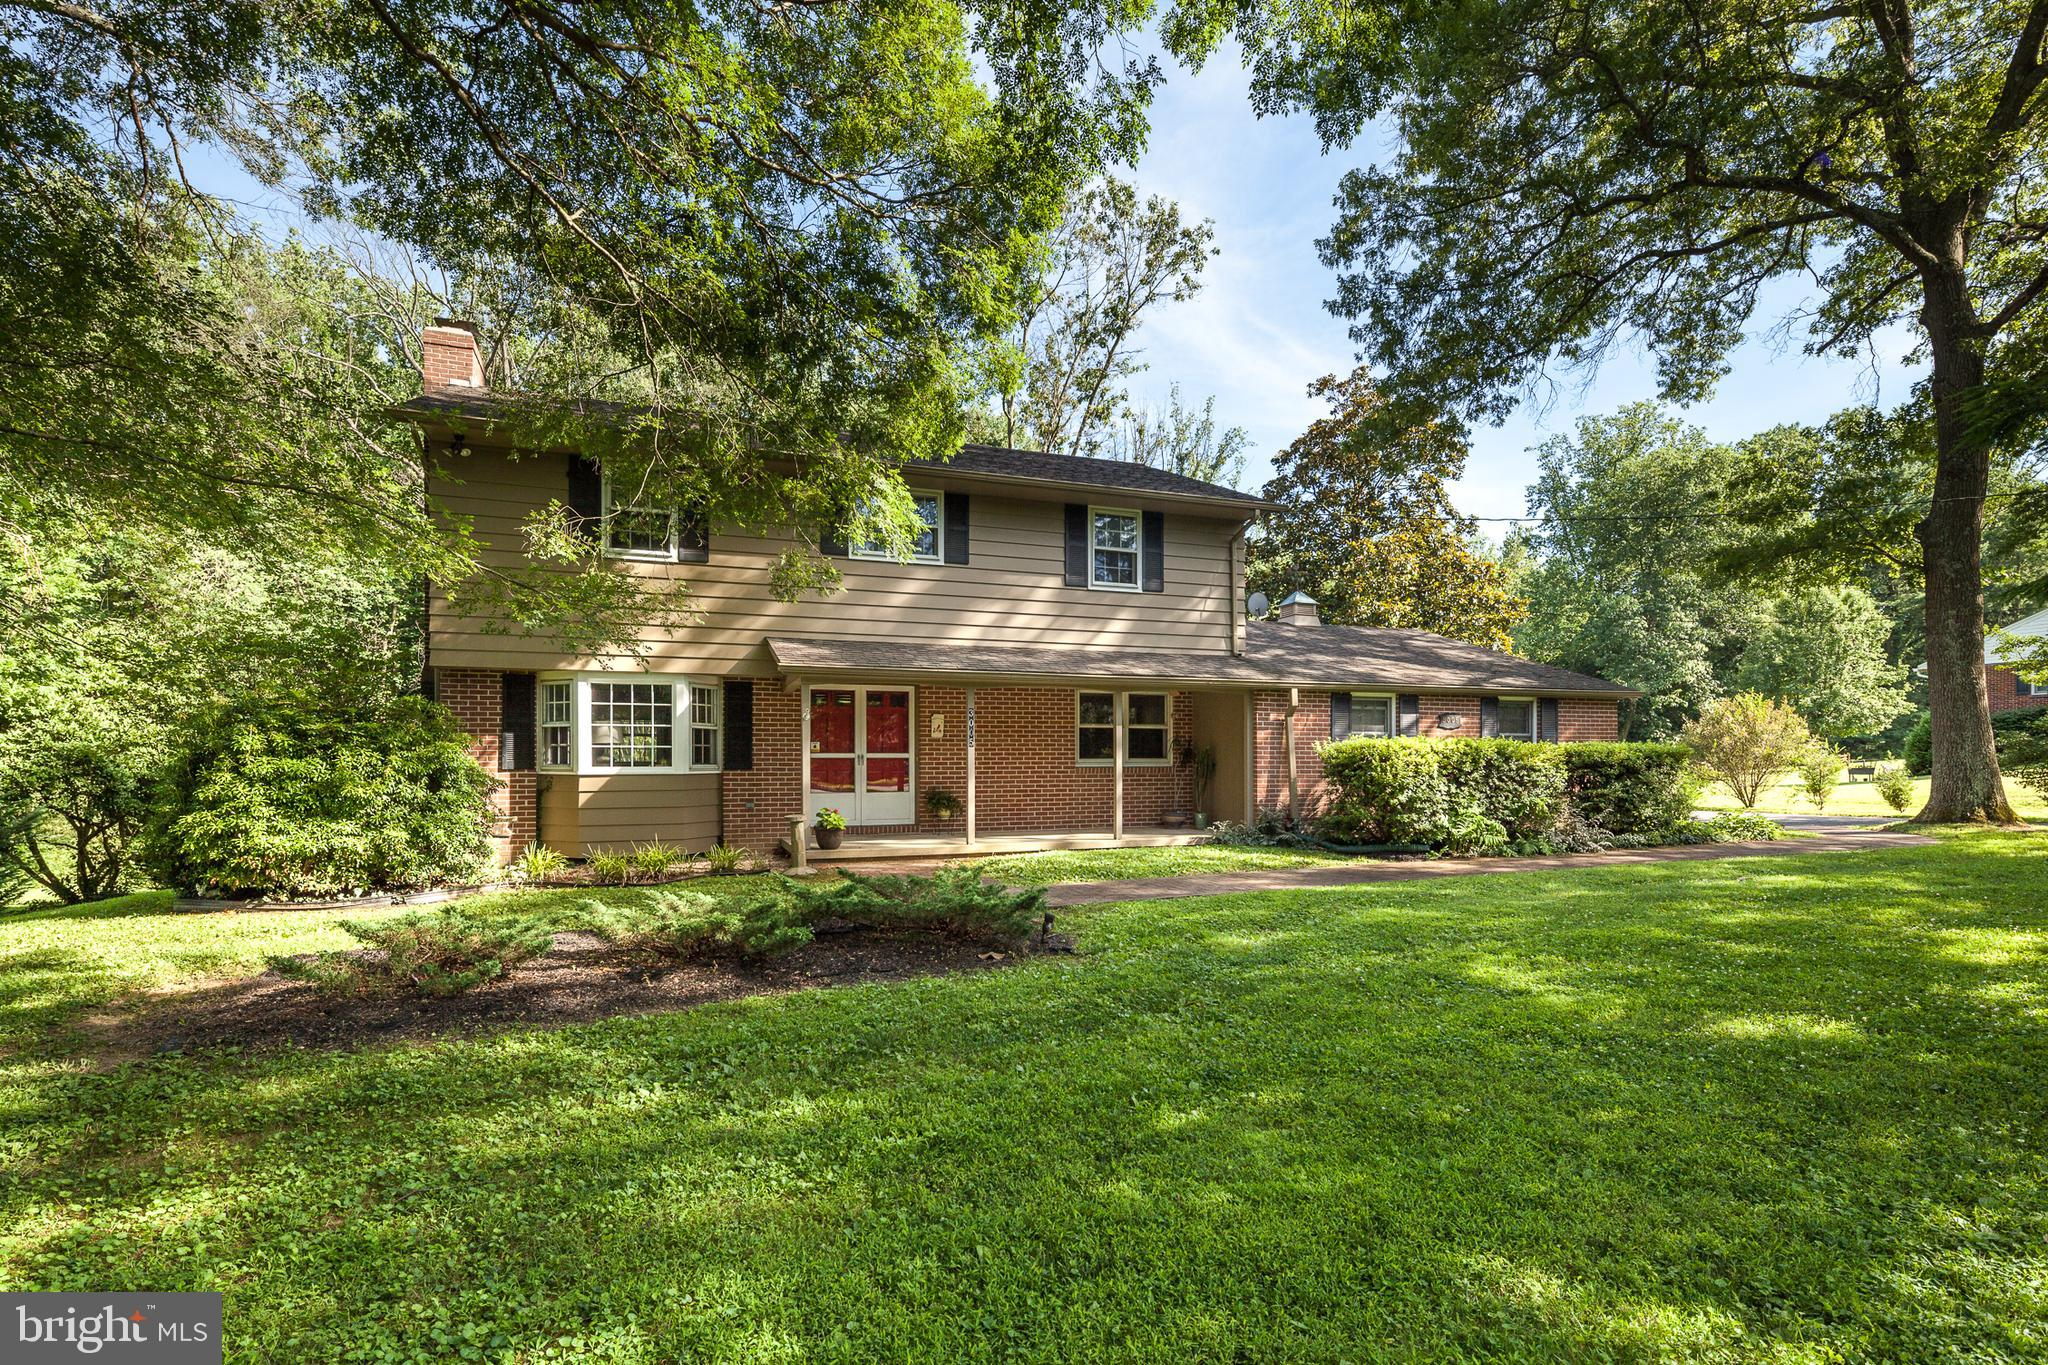 3005 ROLLING GREEN DRIVE, CHURCHVILLE, MD 21028